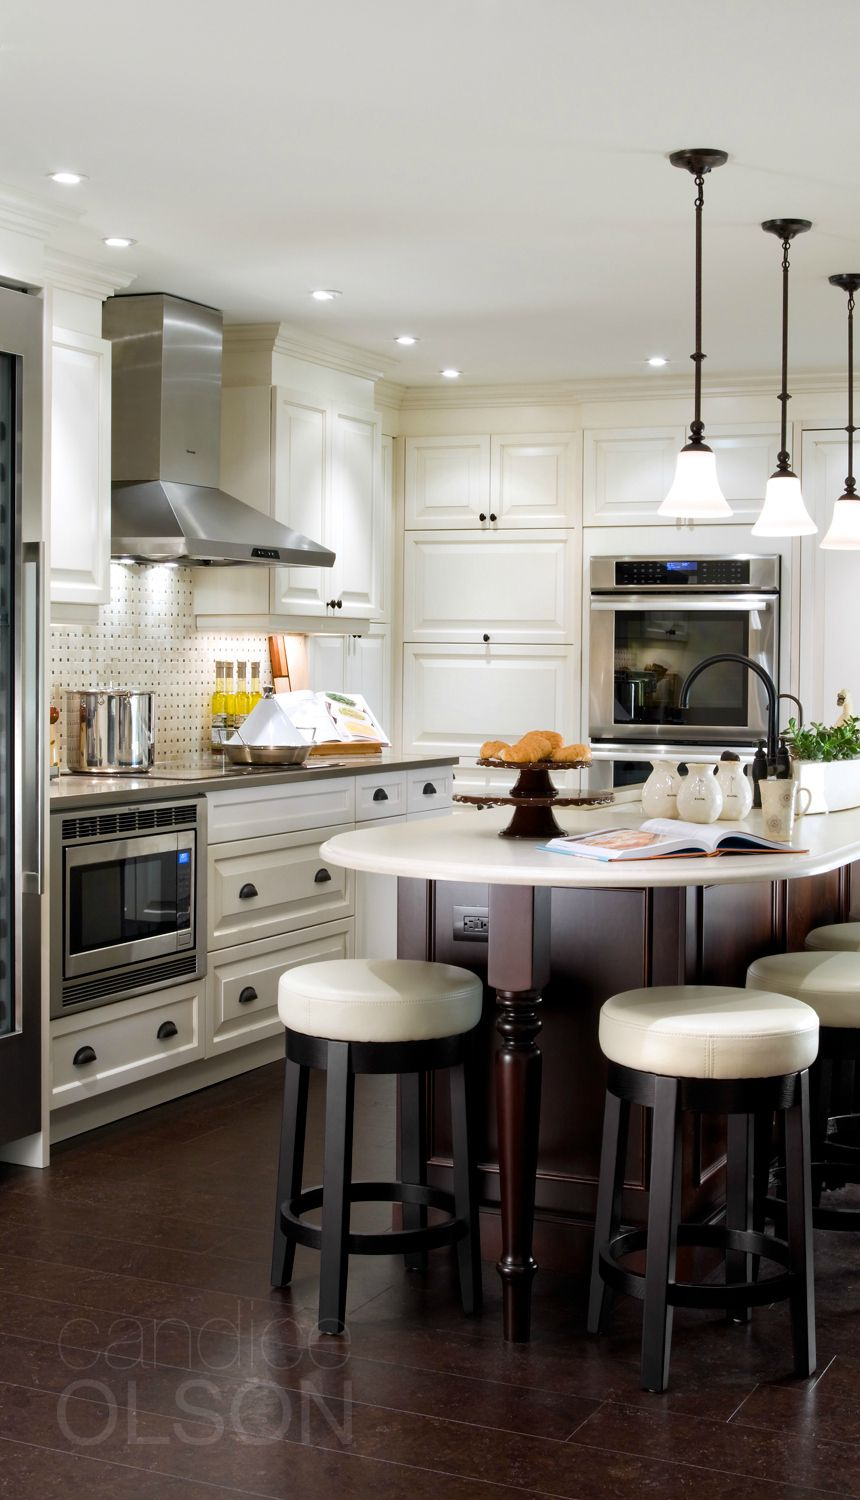 kitchen design by candice olson design inc candiceolson rh pinterest com